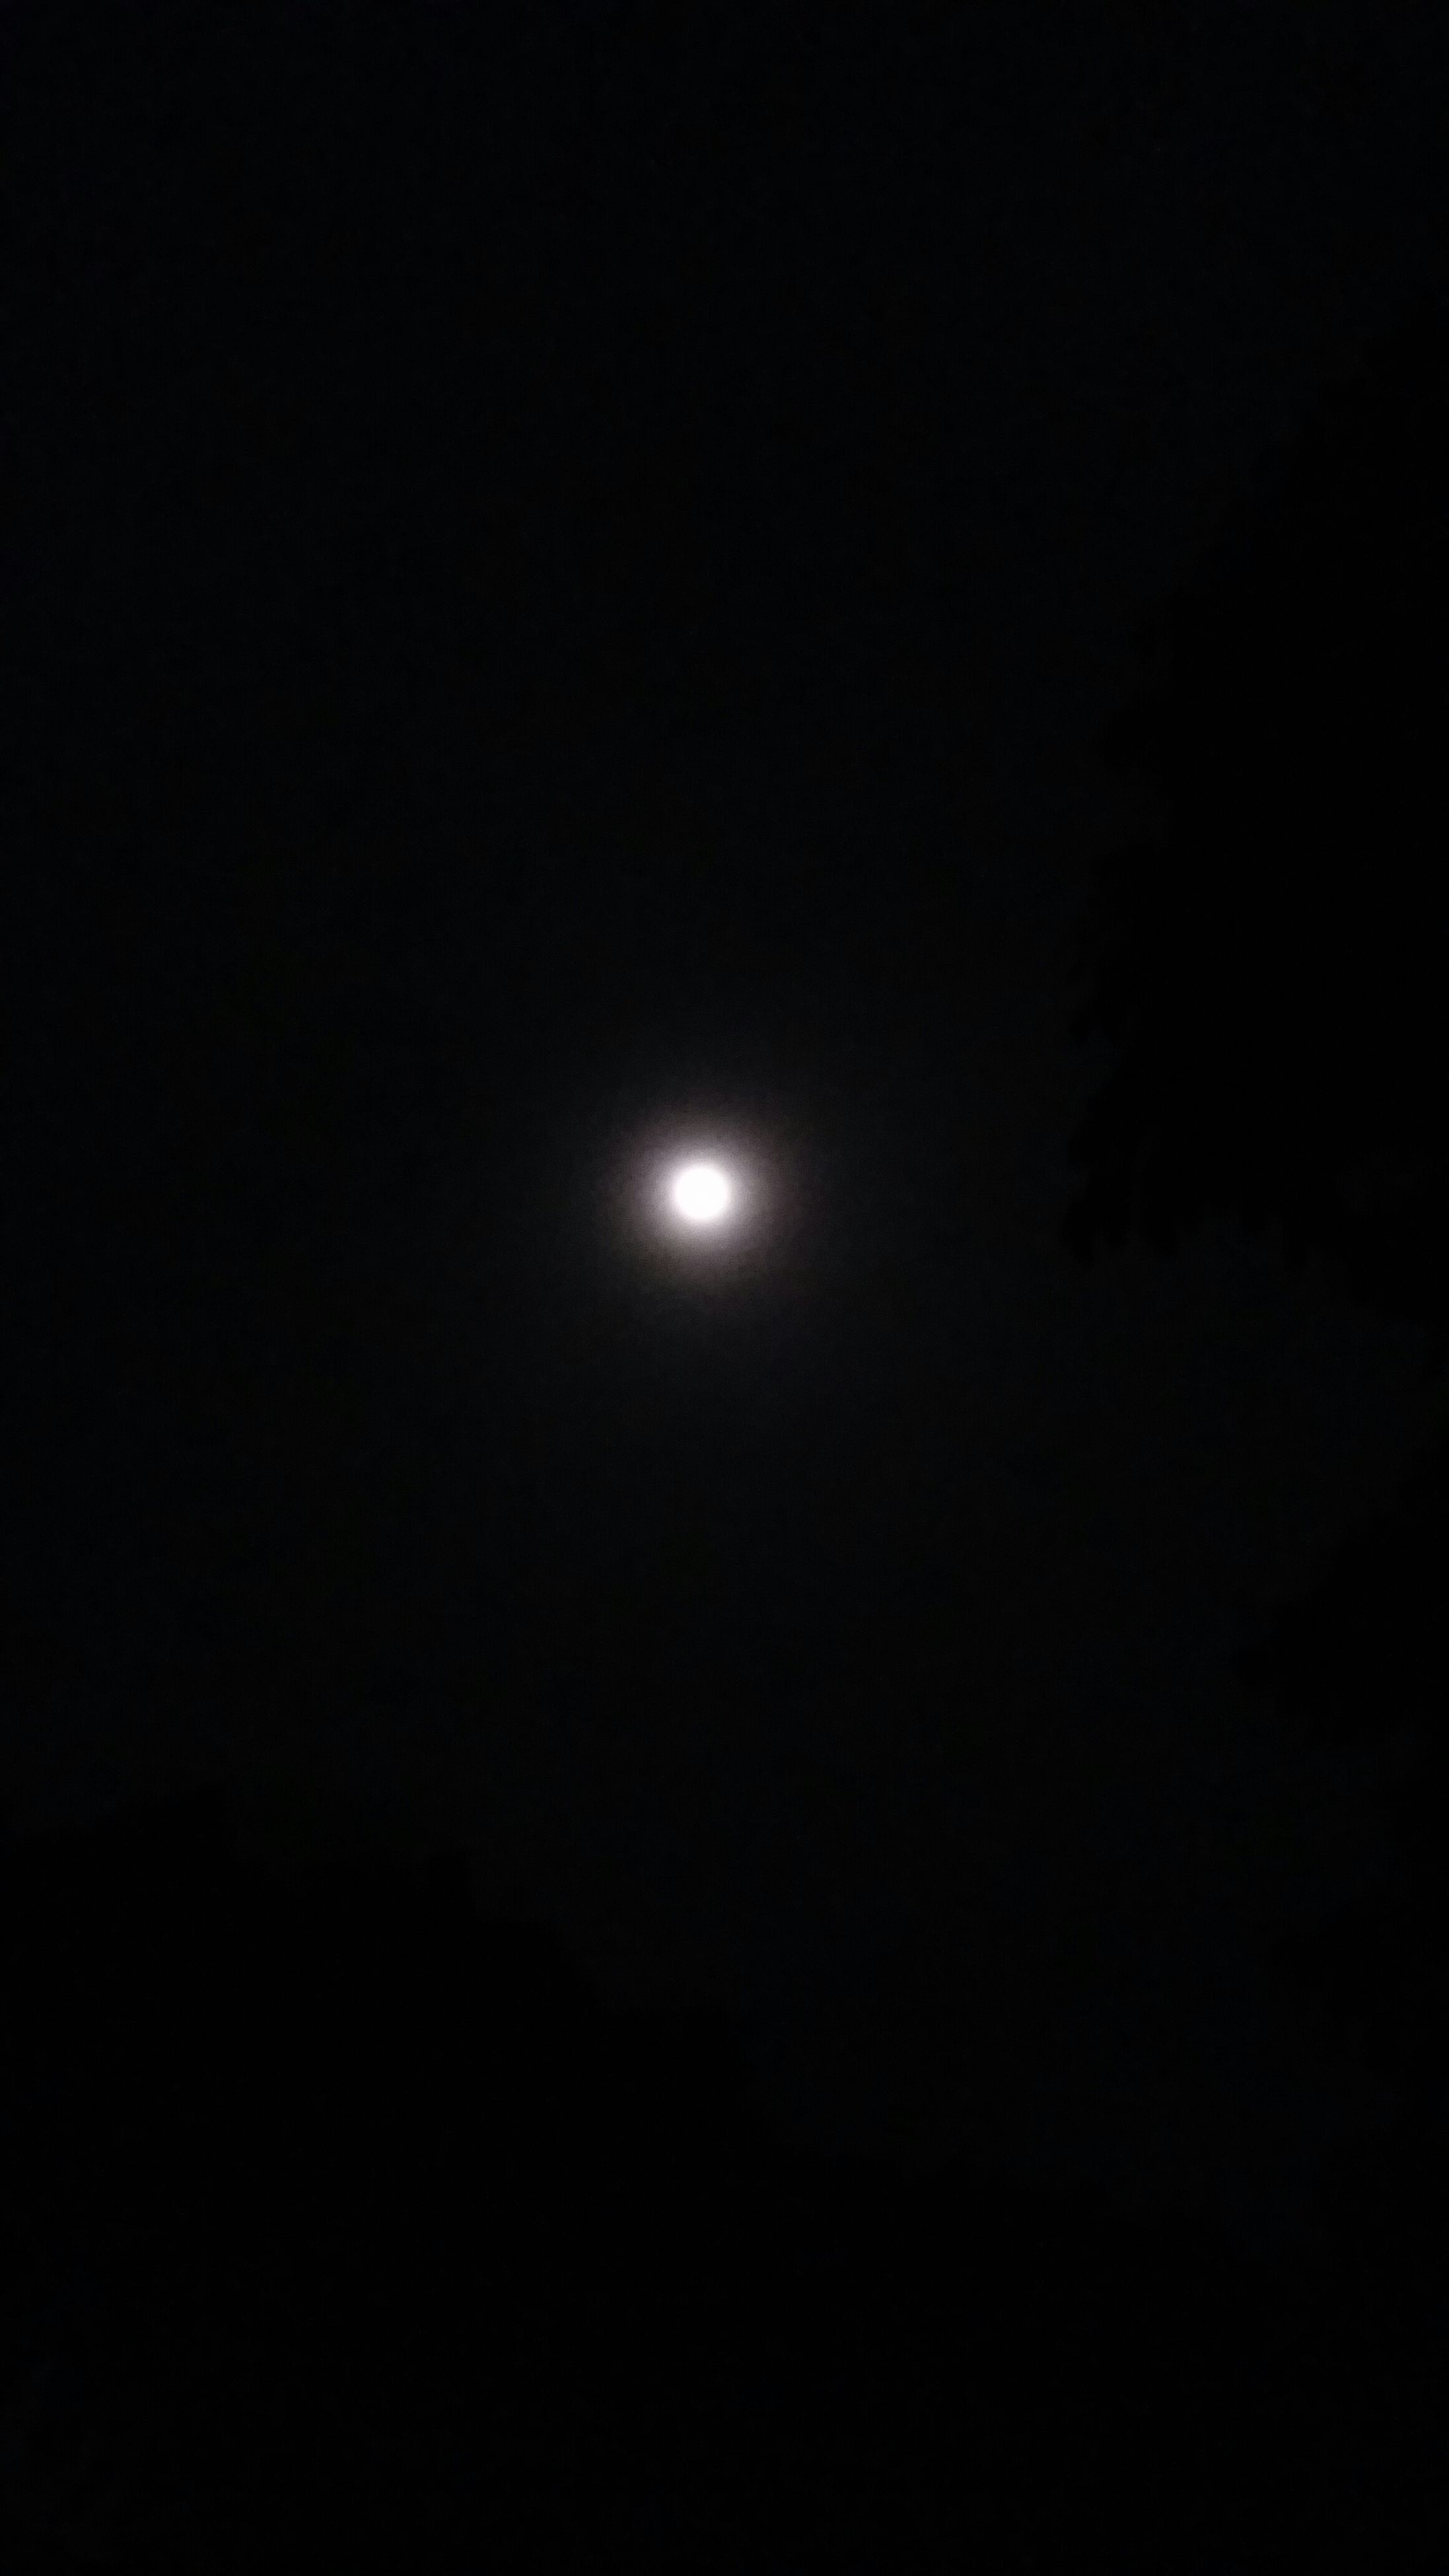 moon, night, astronomy, beauty in nature, scenics, copy space, tranquility, full moon, low angle view, tranquil scene, dark, nature, clear sky, sky, planetary moon, idyllic, moonlight, majestic, space, space exploration